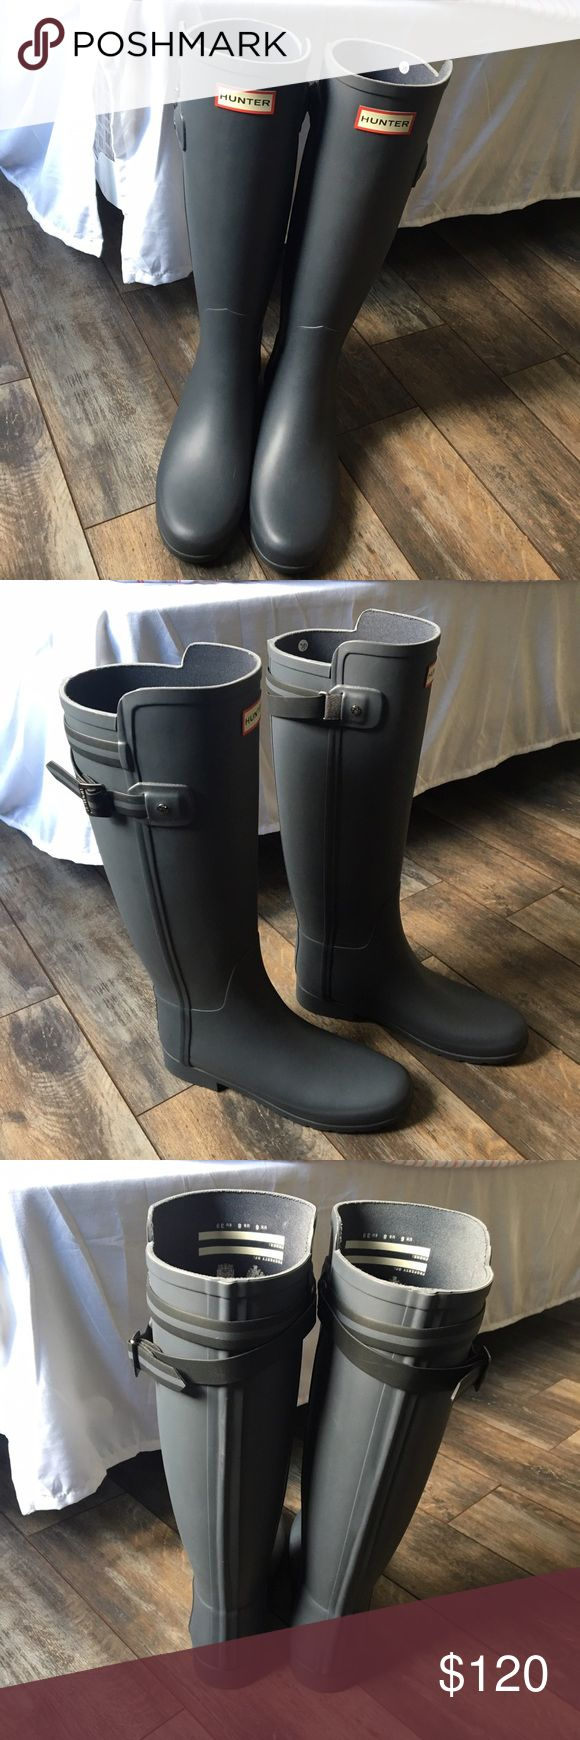 Tall Grey Hunter Boots Wore once and decided I wanted the tall glossy black hunter boots instead Hunter Shoes Winter & Rain Boots